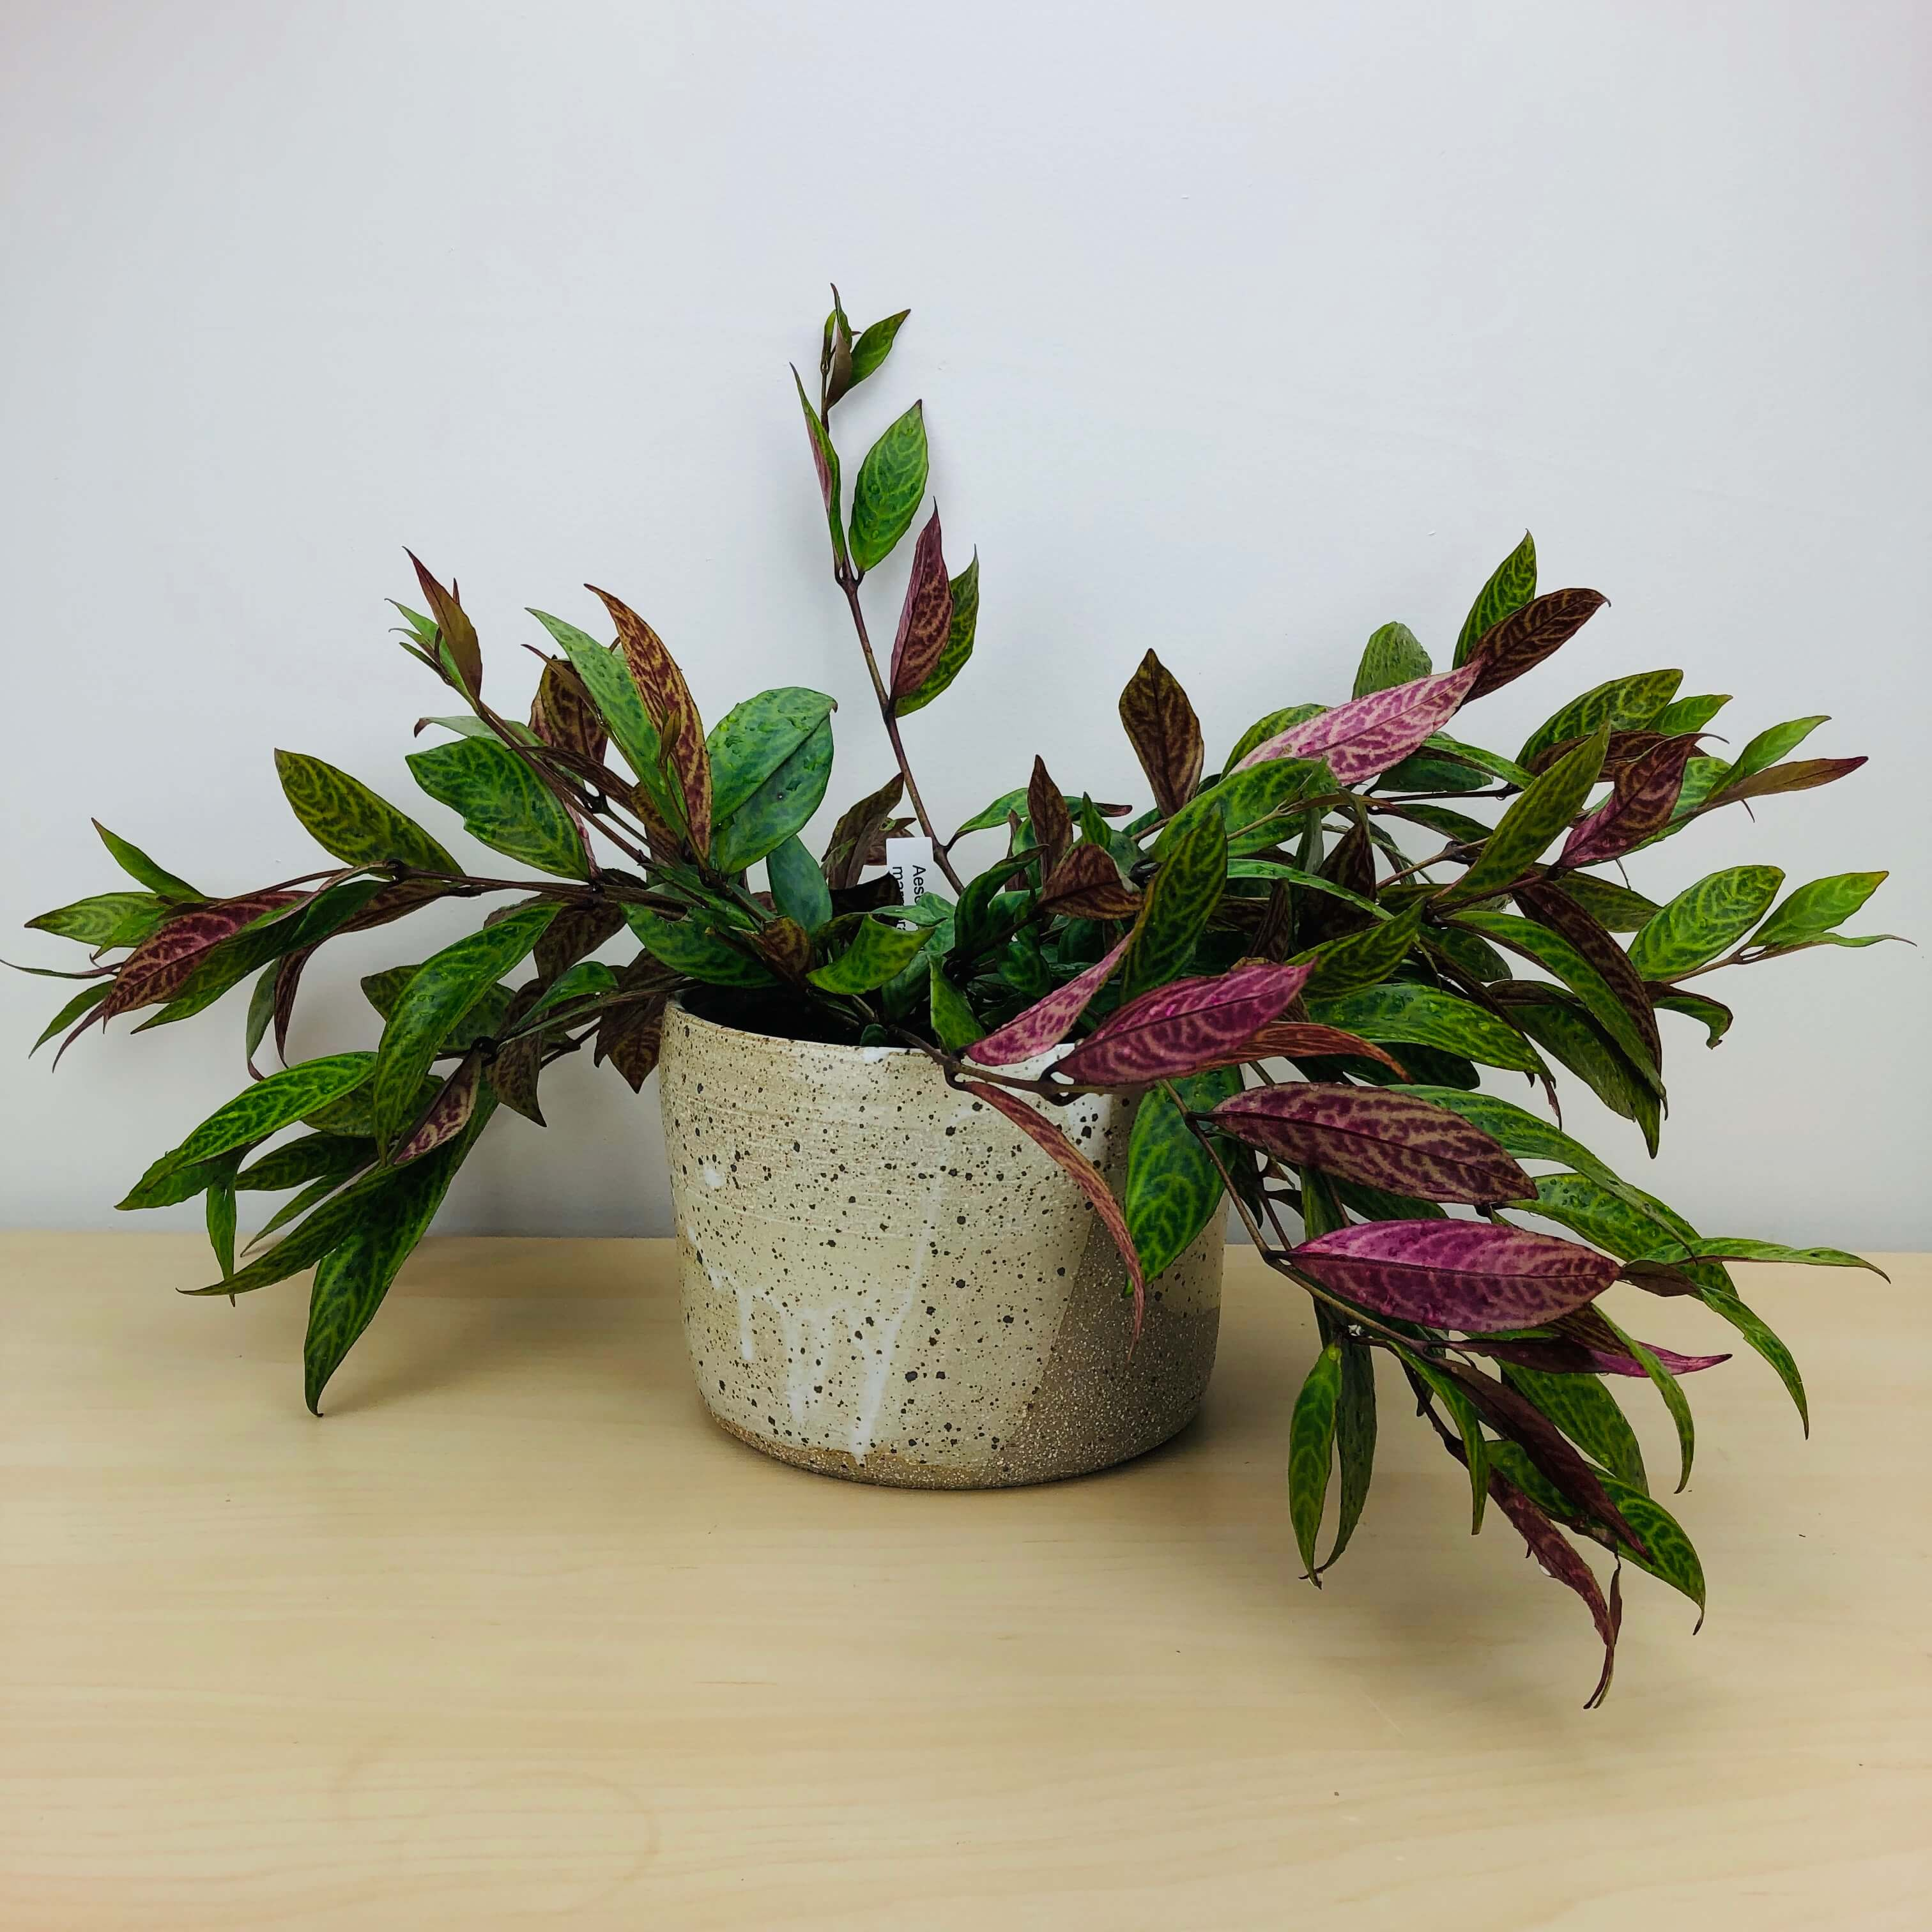 Lipstick Plant Aeshynanthus Marmoratus Indoor Plants Delivered